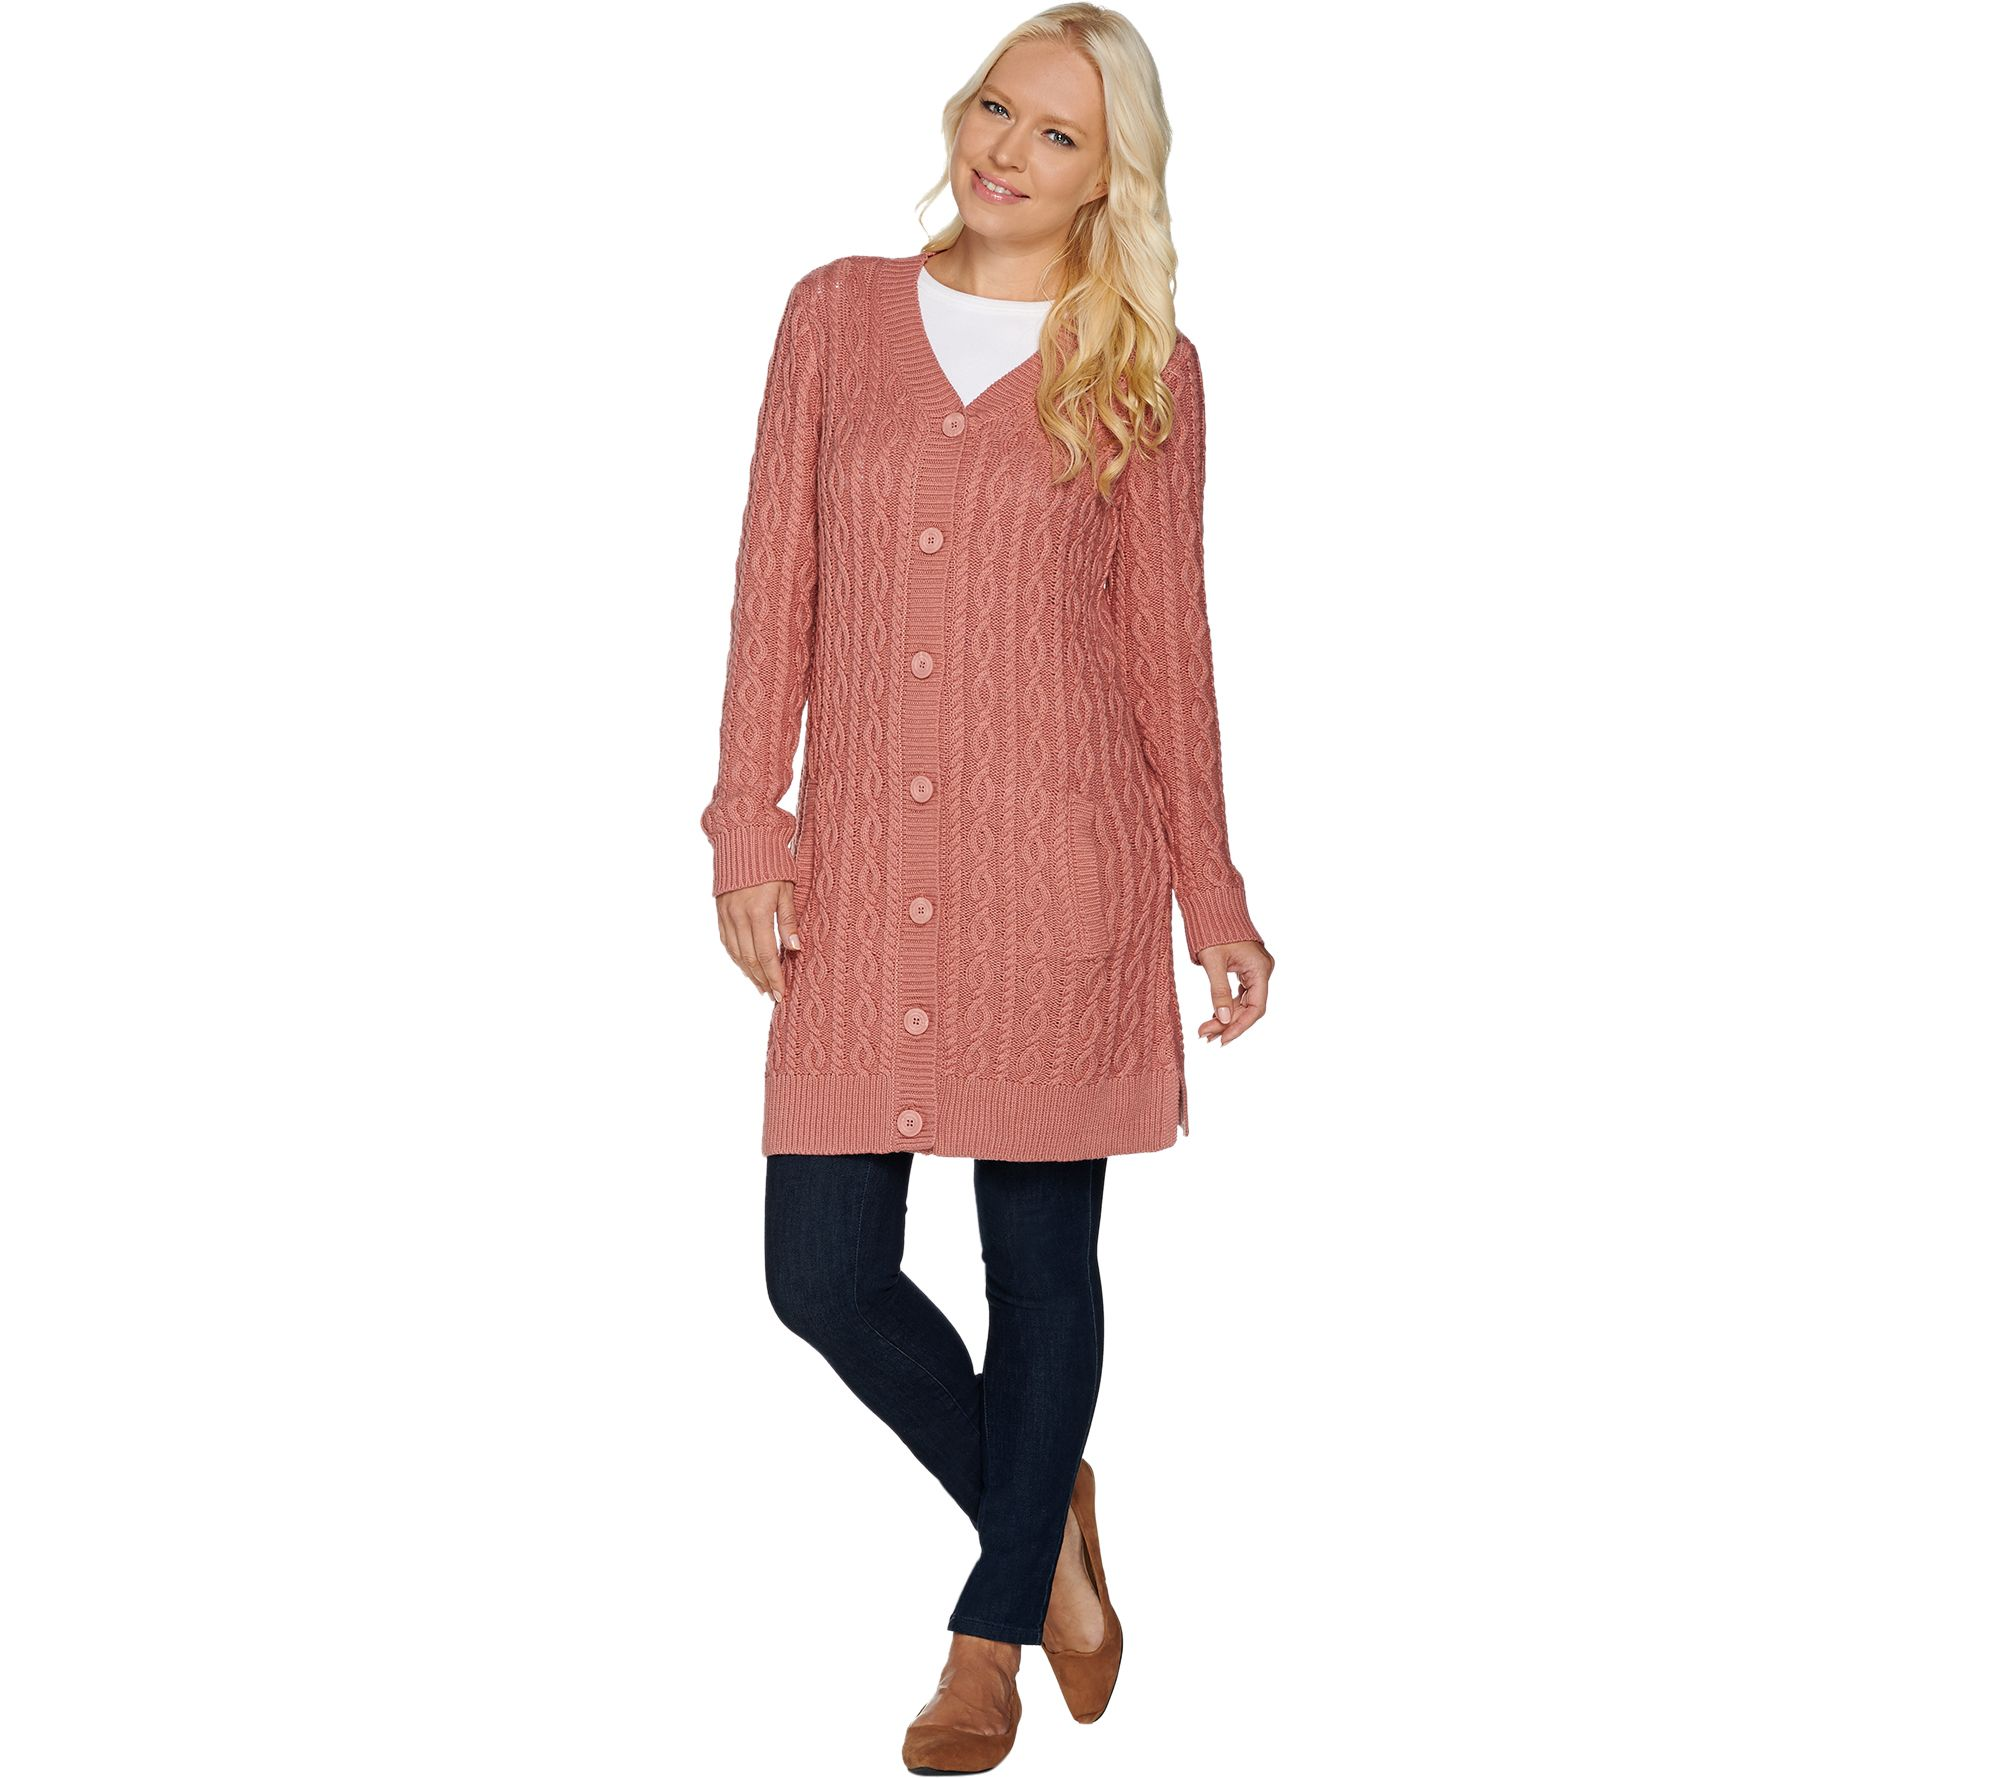 17461e319ebbaf Button Front Cable Knit Tunic Cardigan with Pockets - Page 1 — QVC.com